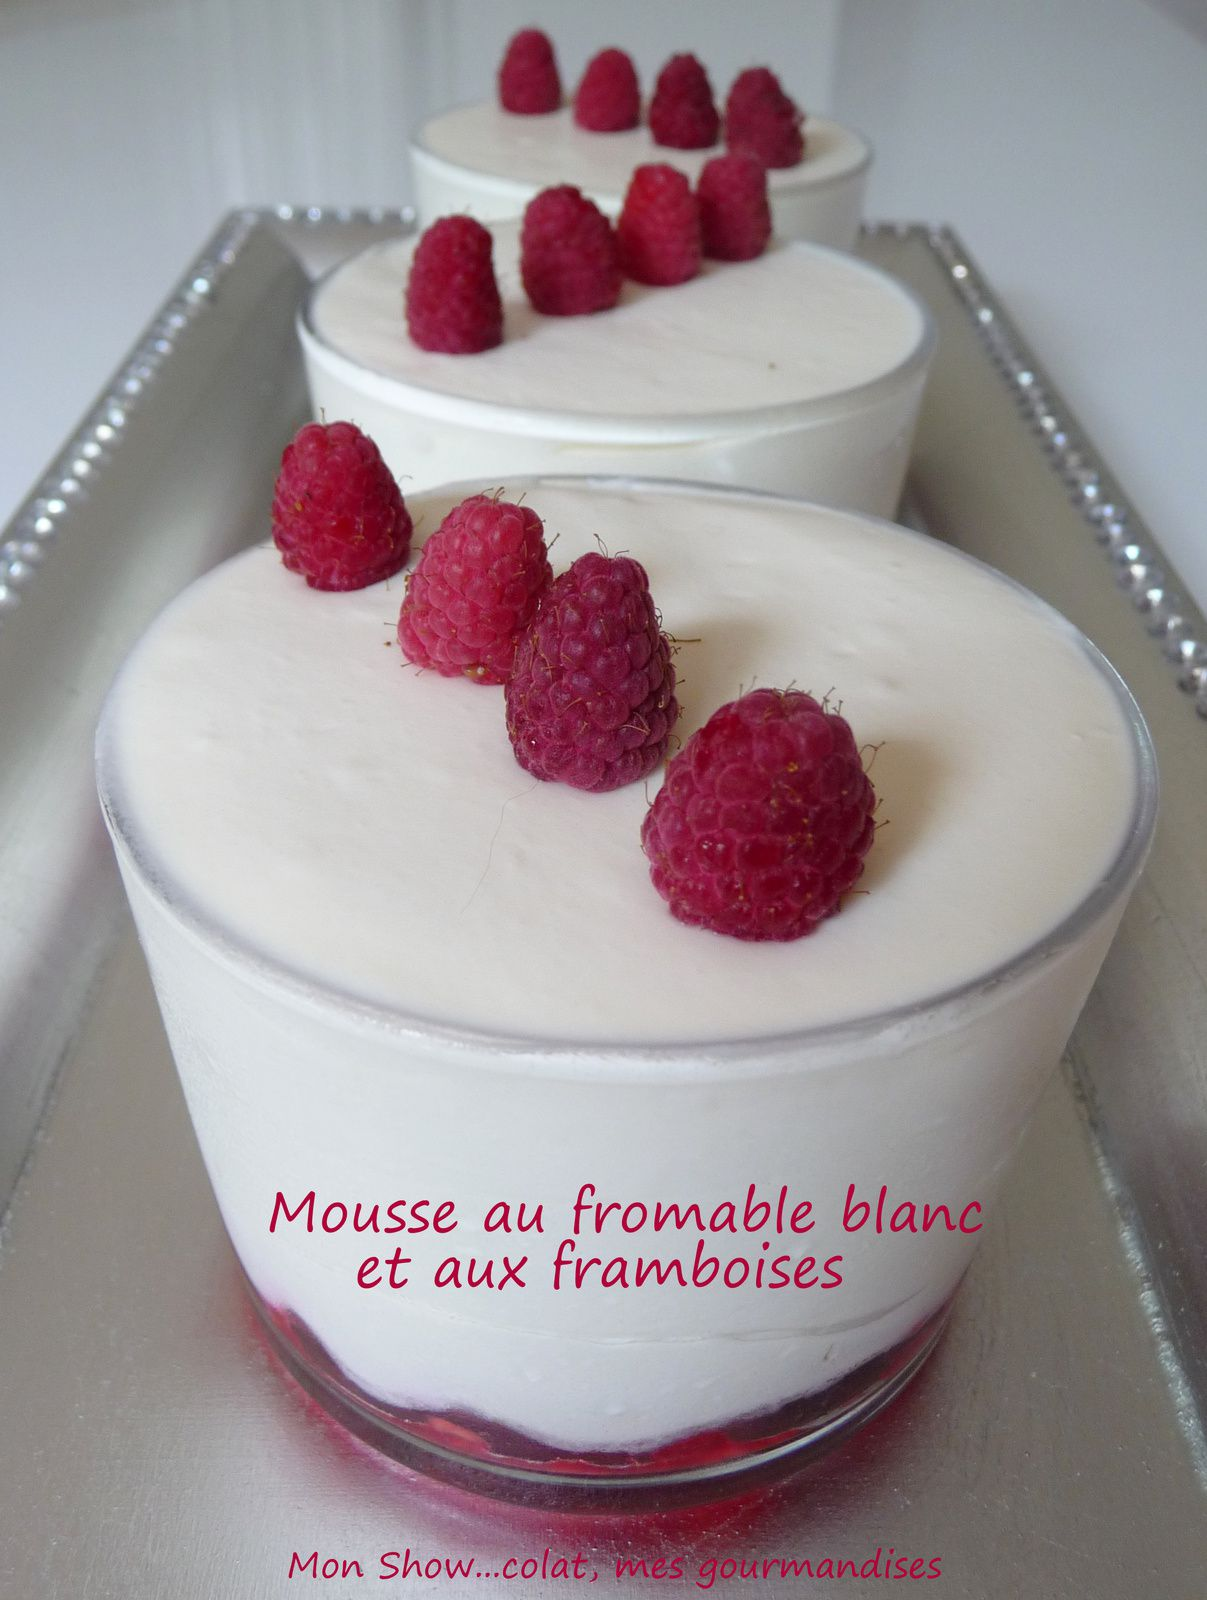 mousse au fromage blanc et framboises sans oeufs mon show colat mes gourmandises. Black Bedroom Furniture Sets. Home Design Ideas